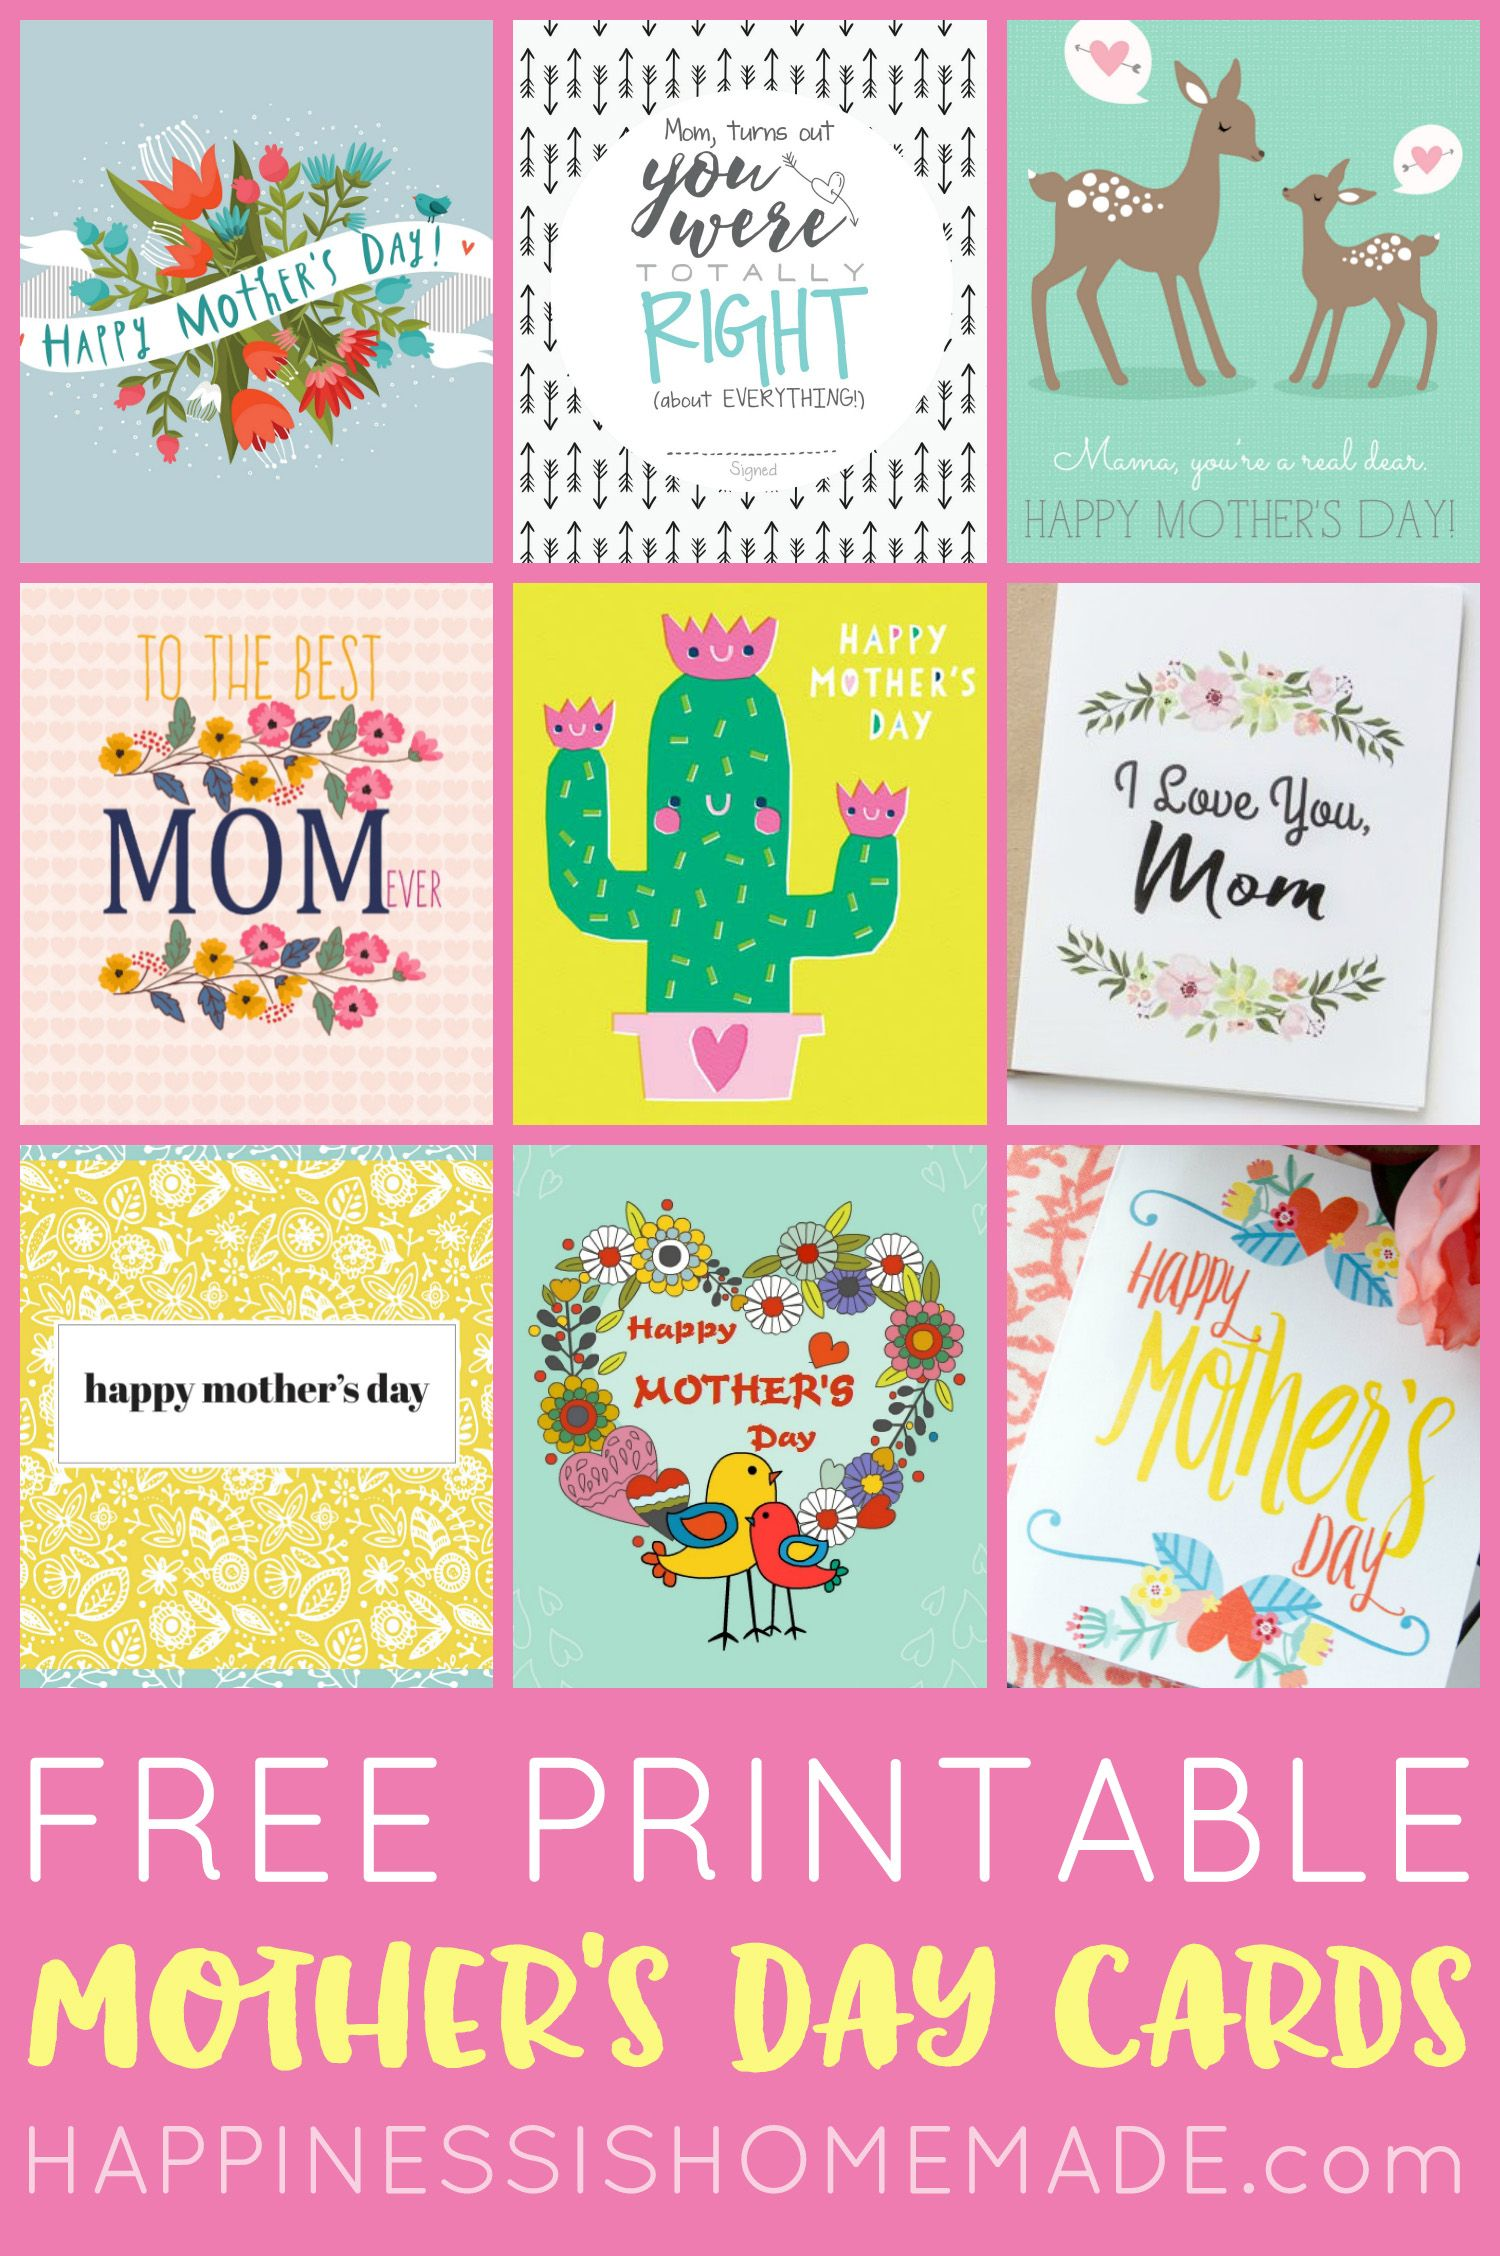 Mothers Day Gift Certificate Template Free Printable 3 ...  |Happy Mothers Day Certificate Printables